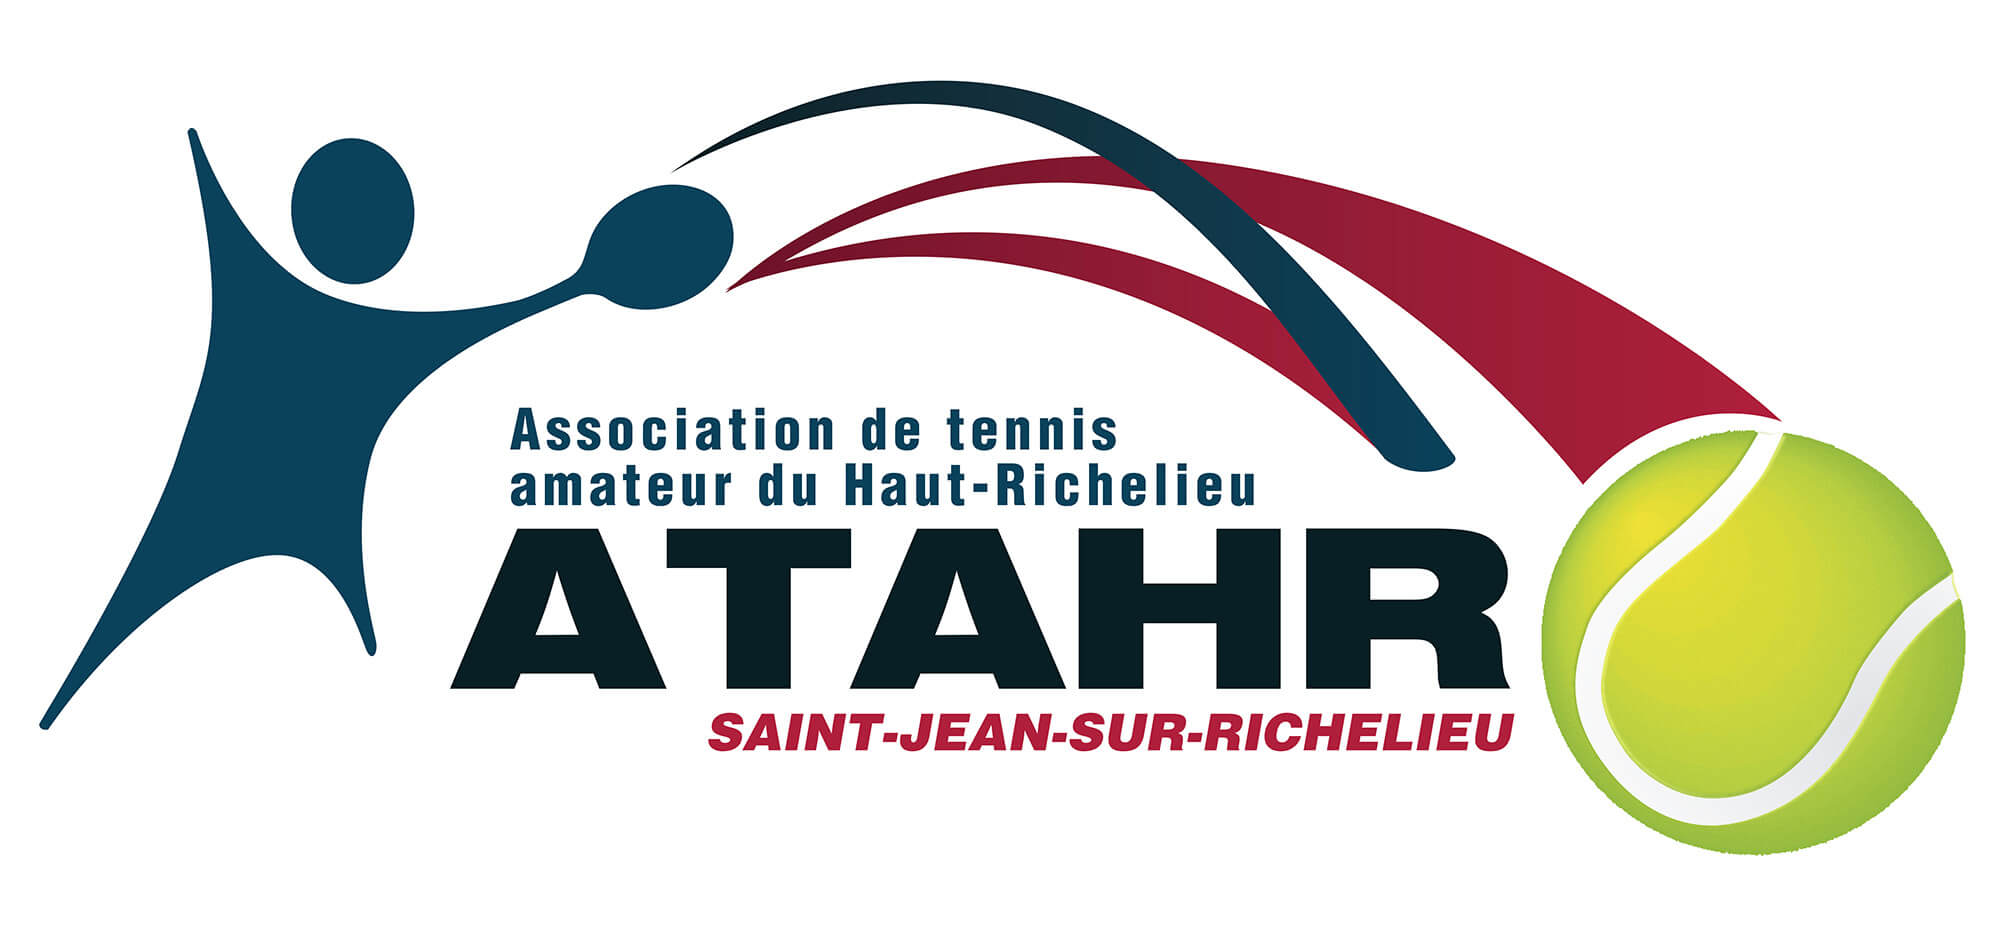 Association de tennis amateur du Haut-Richelieu